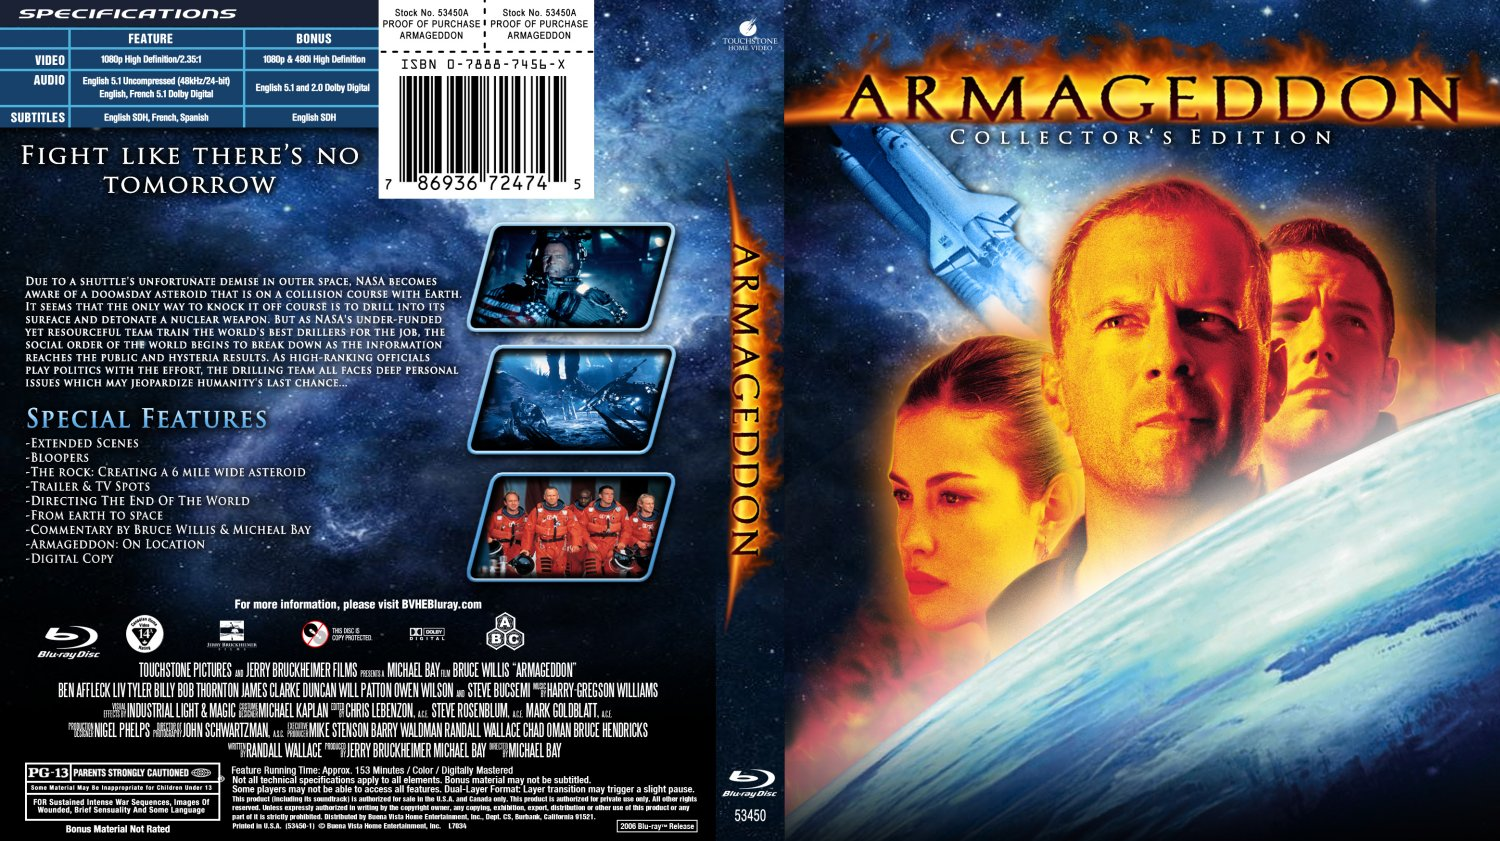 armageddon collector s edition blu ray movie blu ray. Black Bedroom Furniture Sets. Home Design Ideas